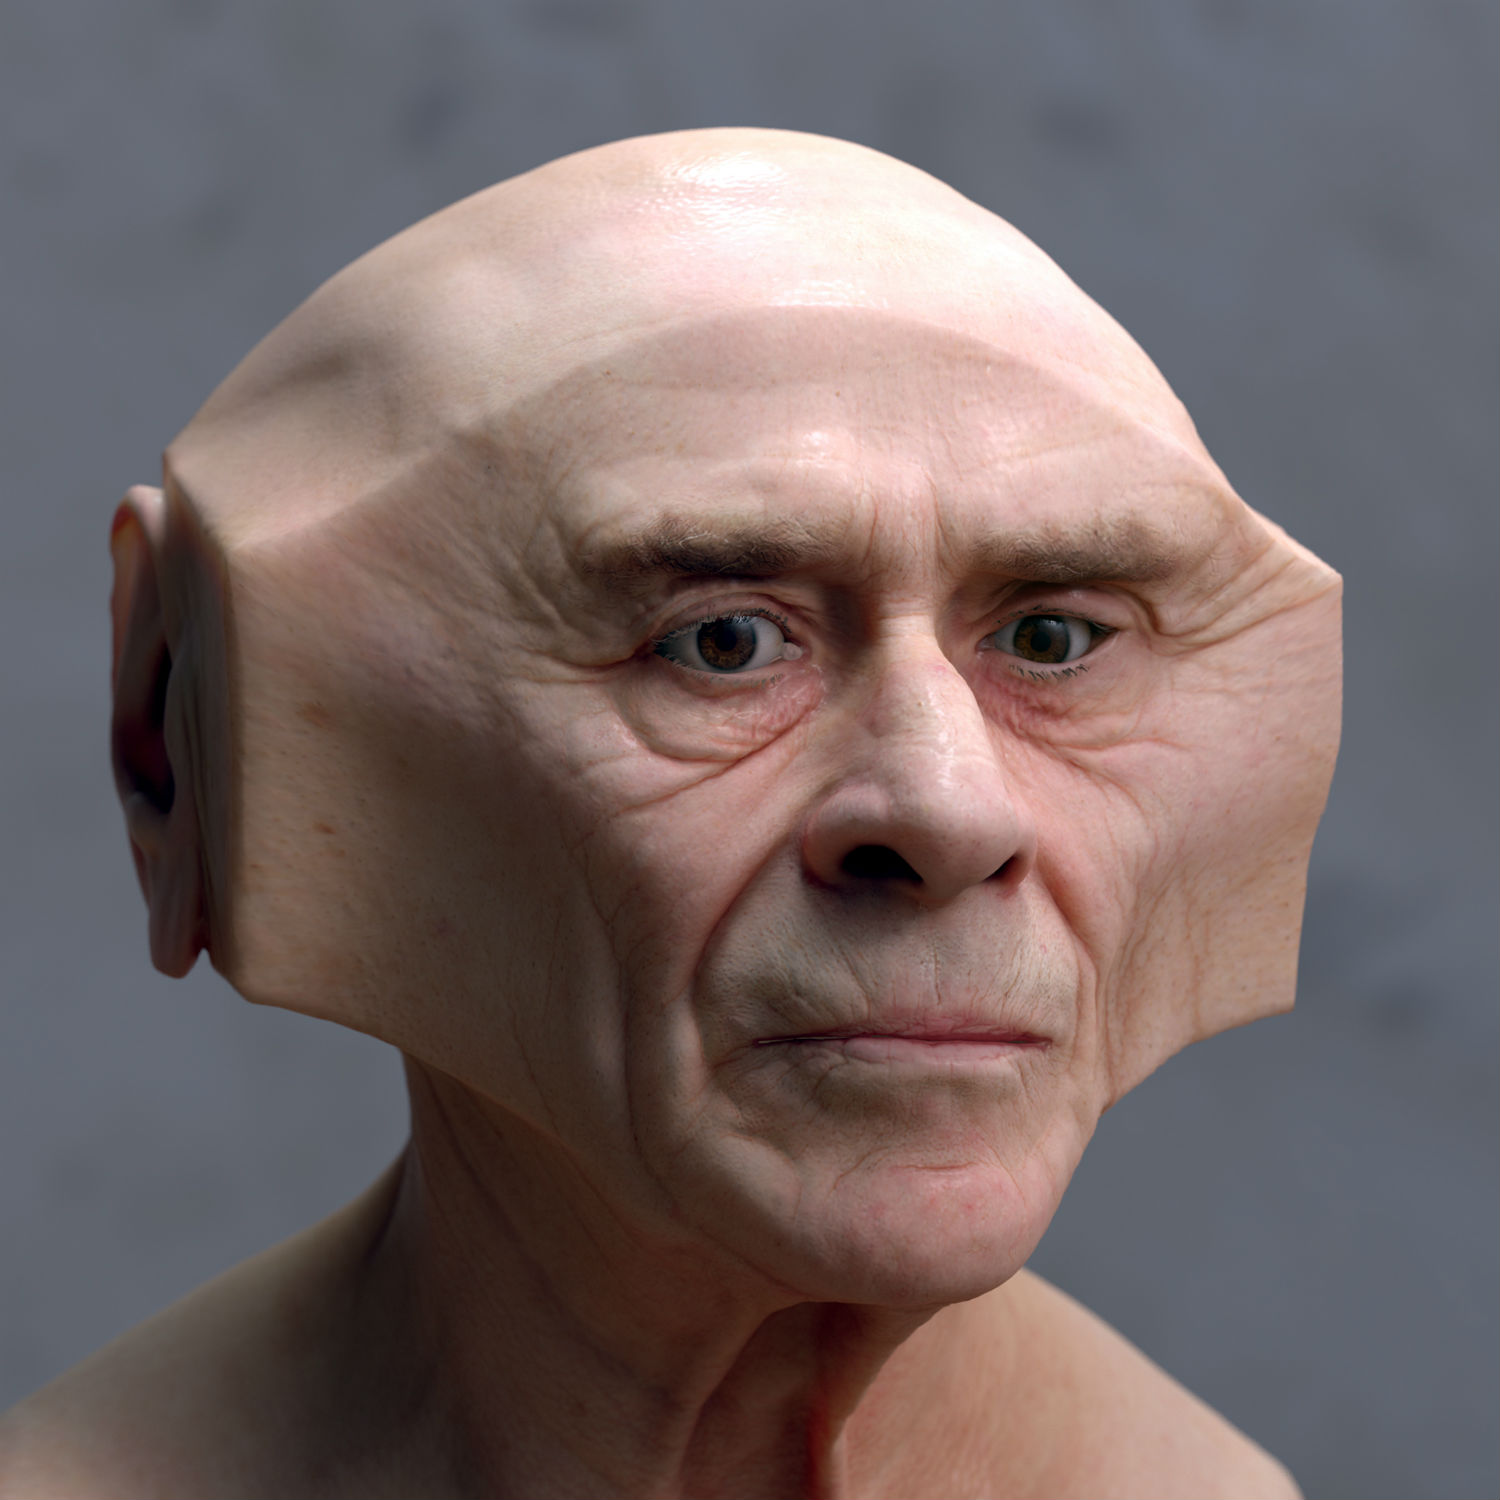 lee griggs deformations digital sculpture strange portrait skin body face